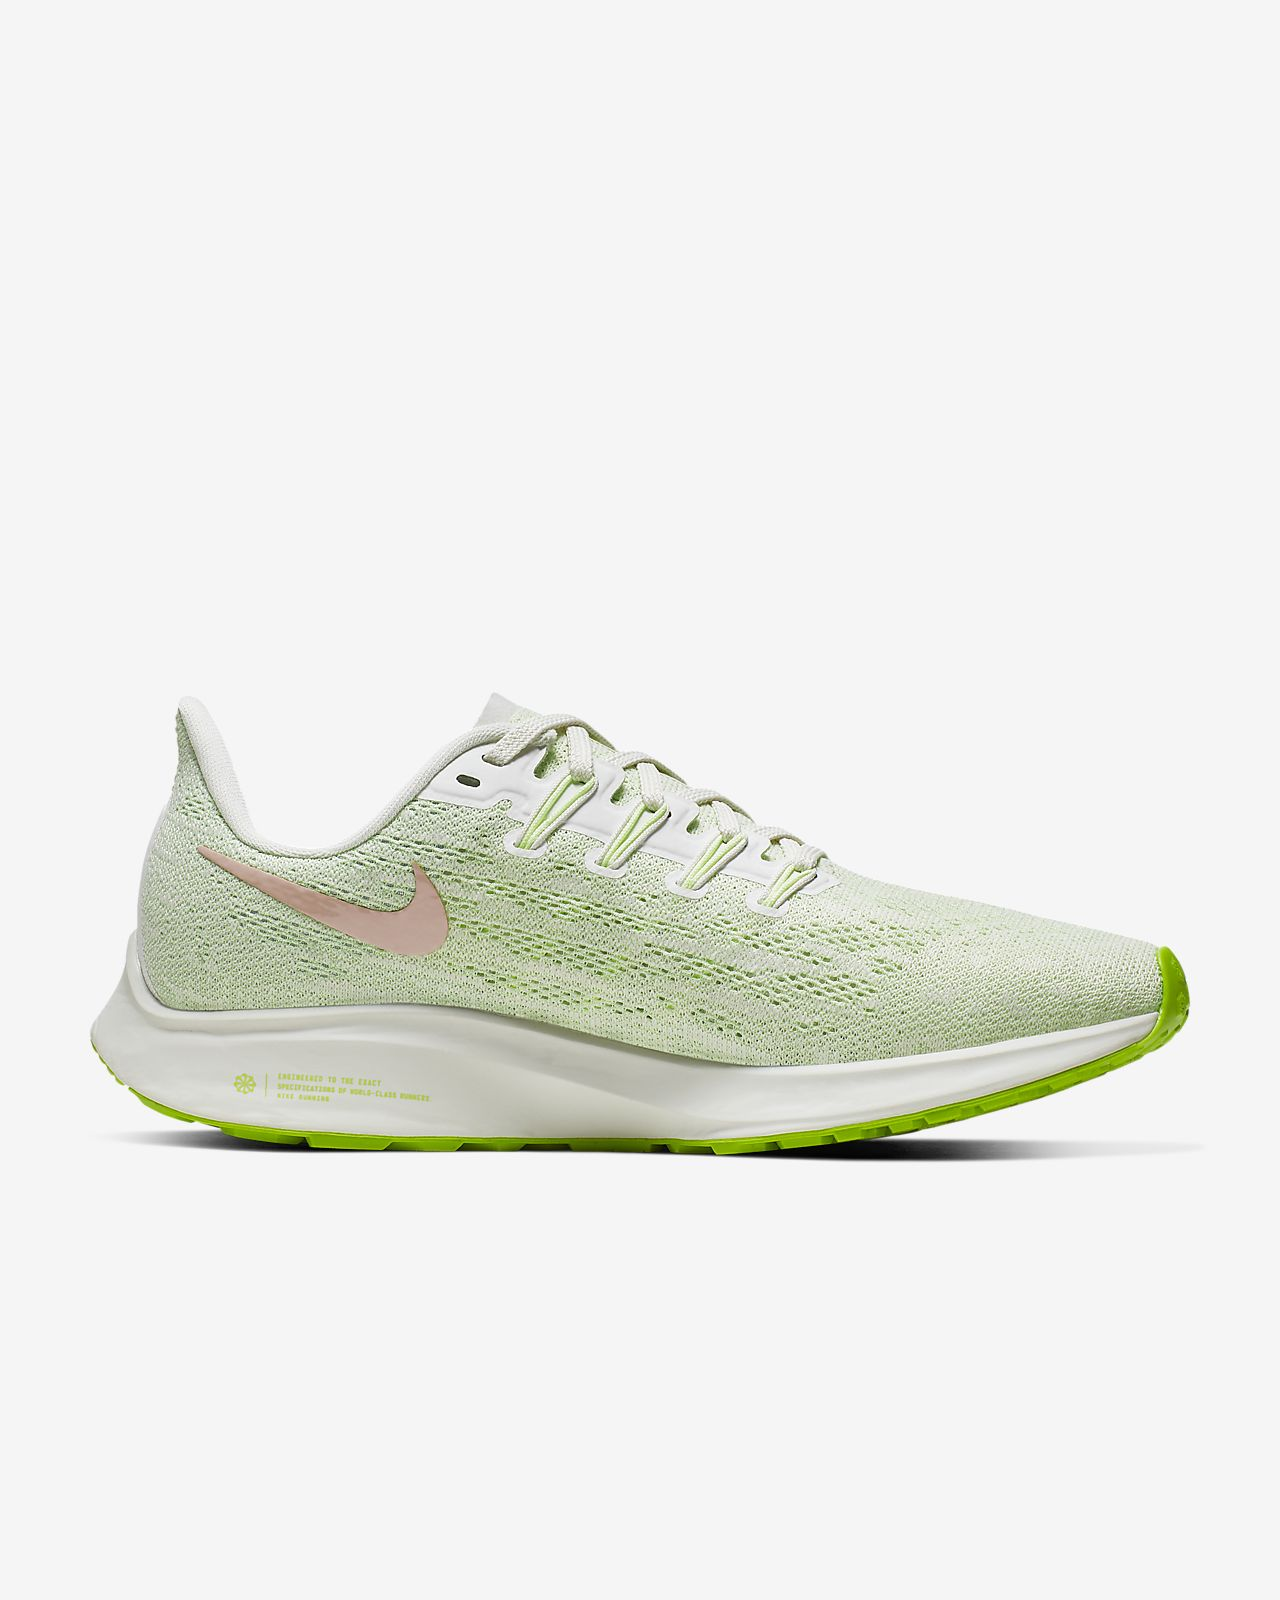 wholesale dealer 0040b 6ede3 Nike Air Zoom Pegasus 36 Women's Running Shoe